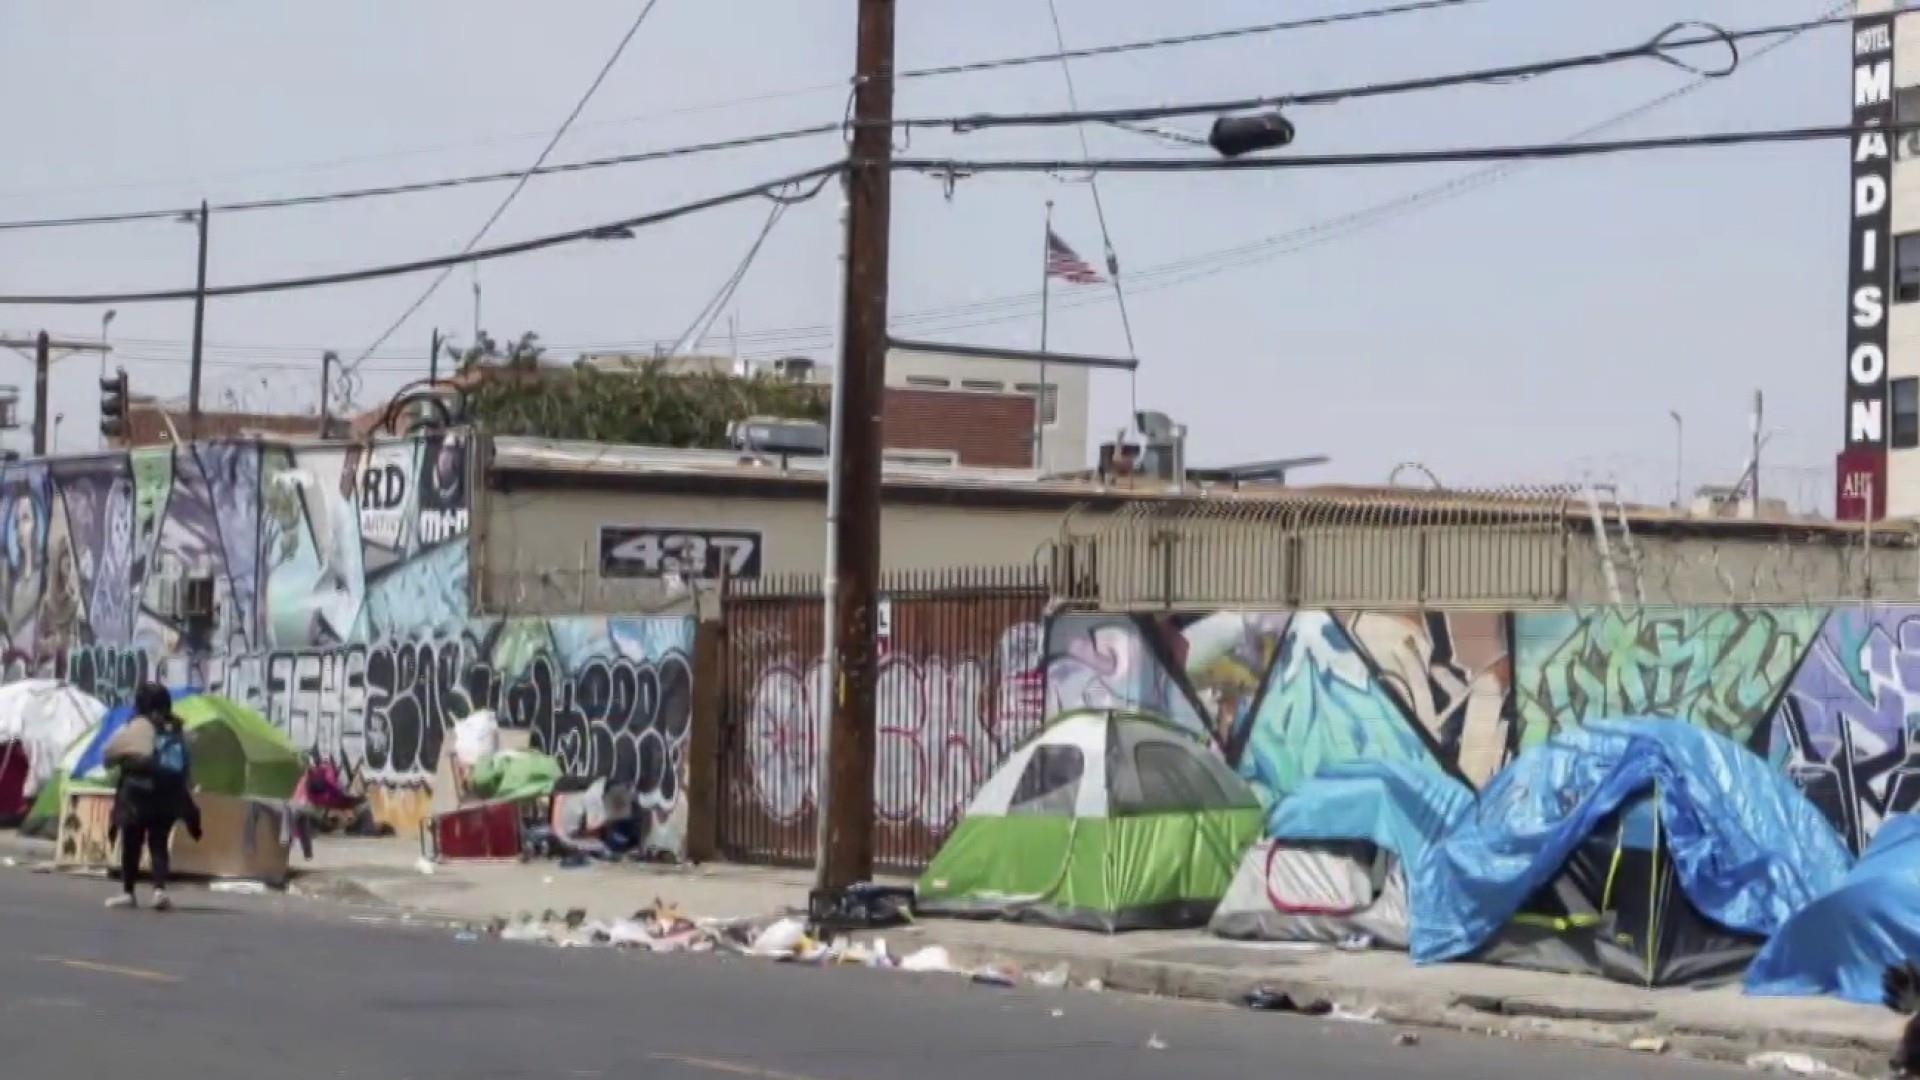 Trump officials eye former FAA facility to relocate homeless people in California